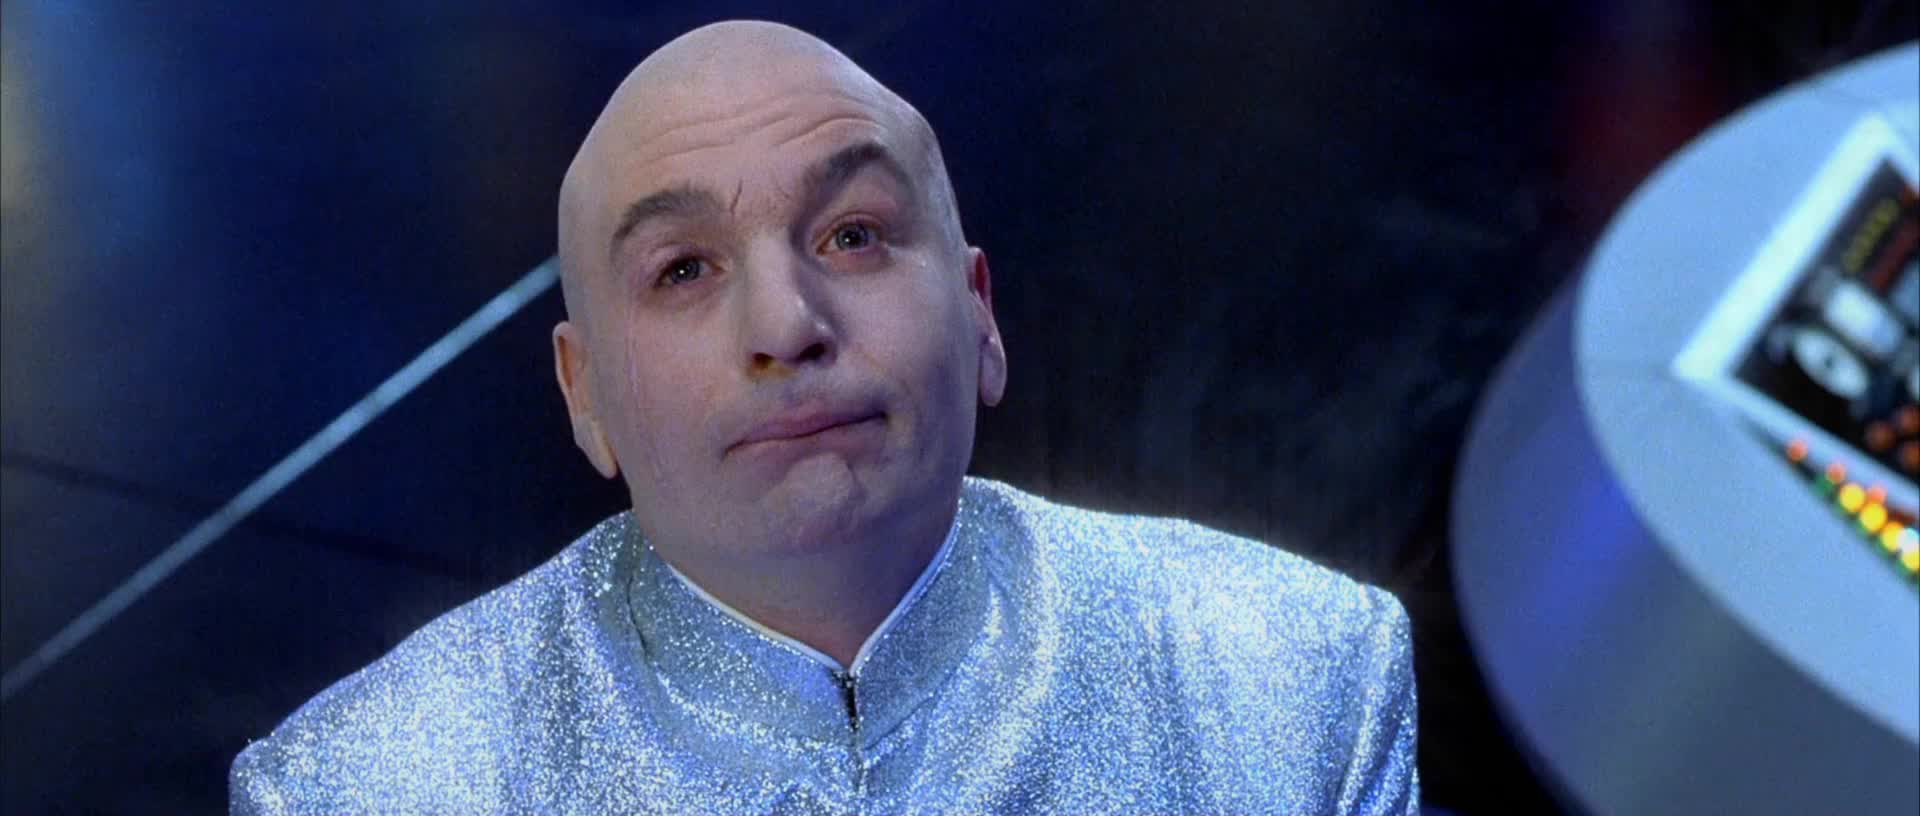 celebs, mike myers, Austin Powers 2 - Replace 1 GIFs